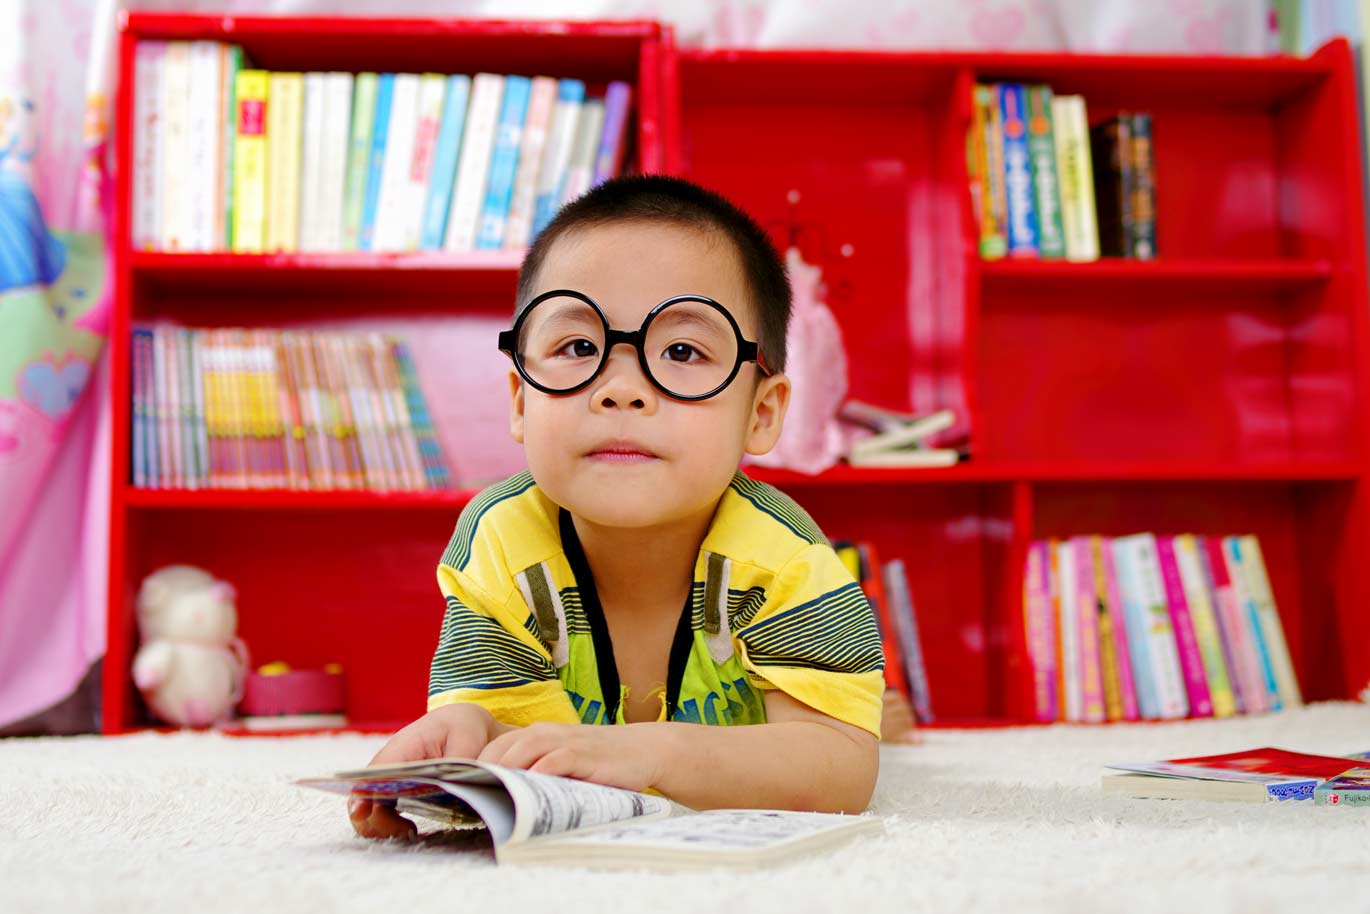 Young Asian boy with glasses reading on a rug in front of a red bookcase